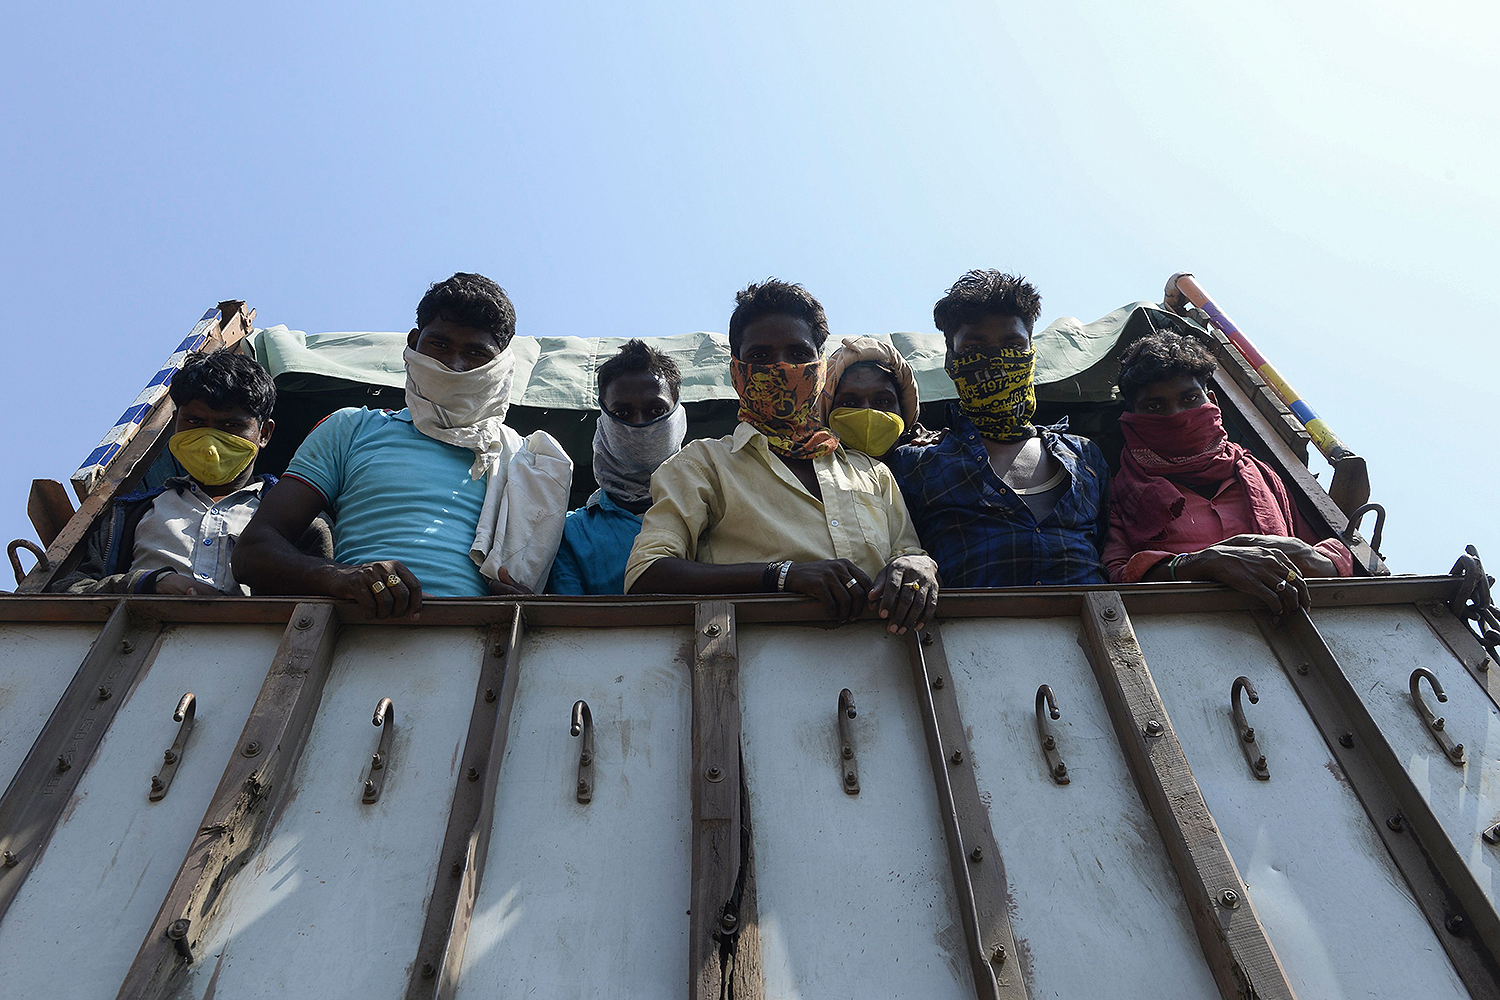 Migrant workers ride in a truck on the outskirts of Hyderabad, India, on May 15 as they return to their hometowns after the government eased a nationwide lockdown. NOAH SEELAM/AFP via Getty Images